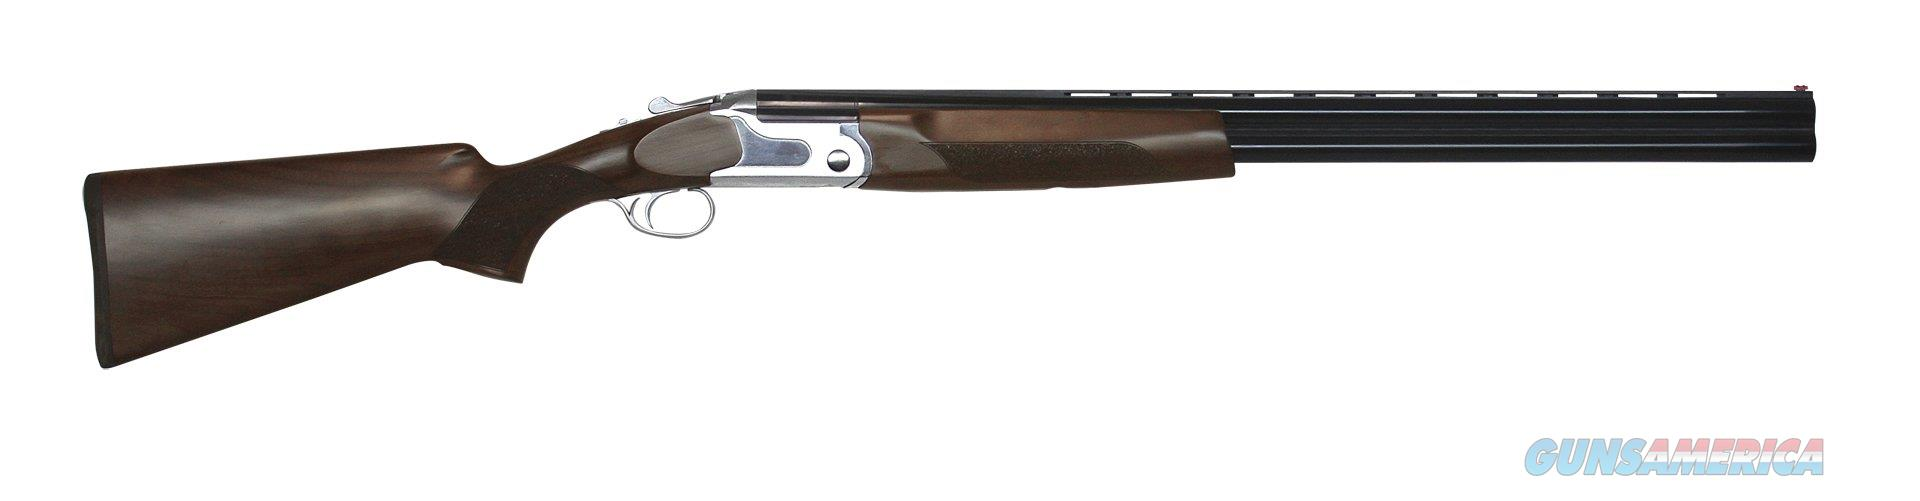 "CZ-USA Southpaw Sterling 12ga 30"" Left-Hand 06097  Guns > Shotguns > CZ Shotguns"